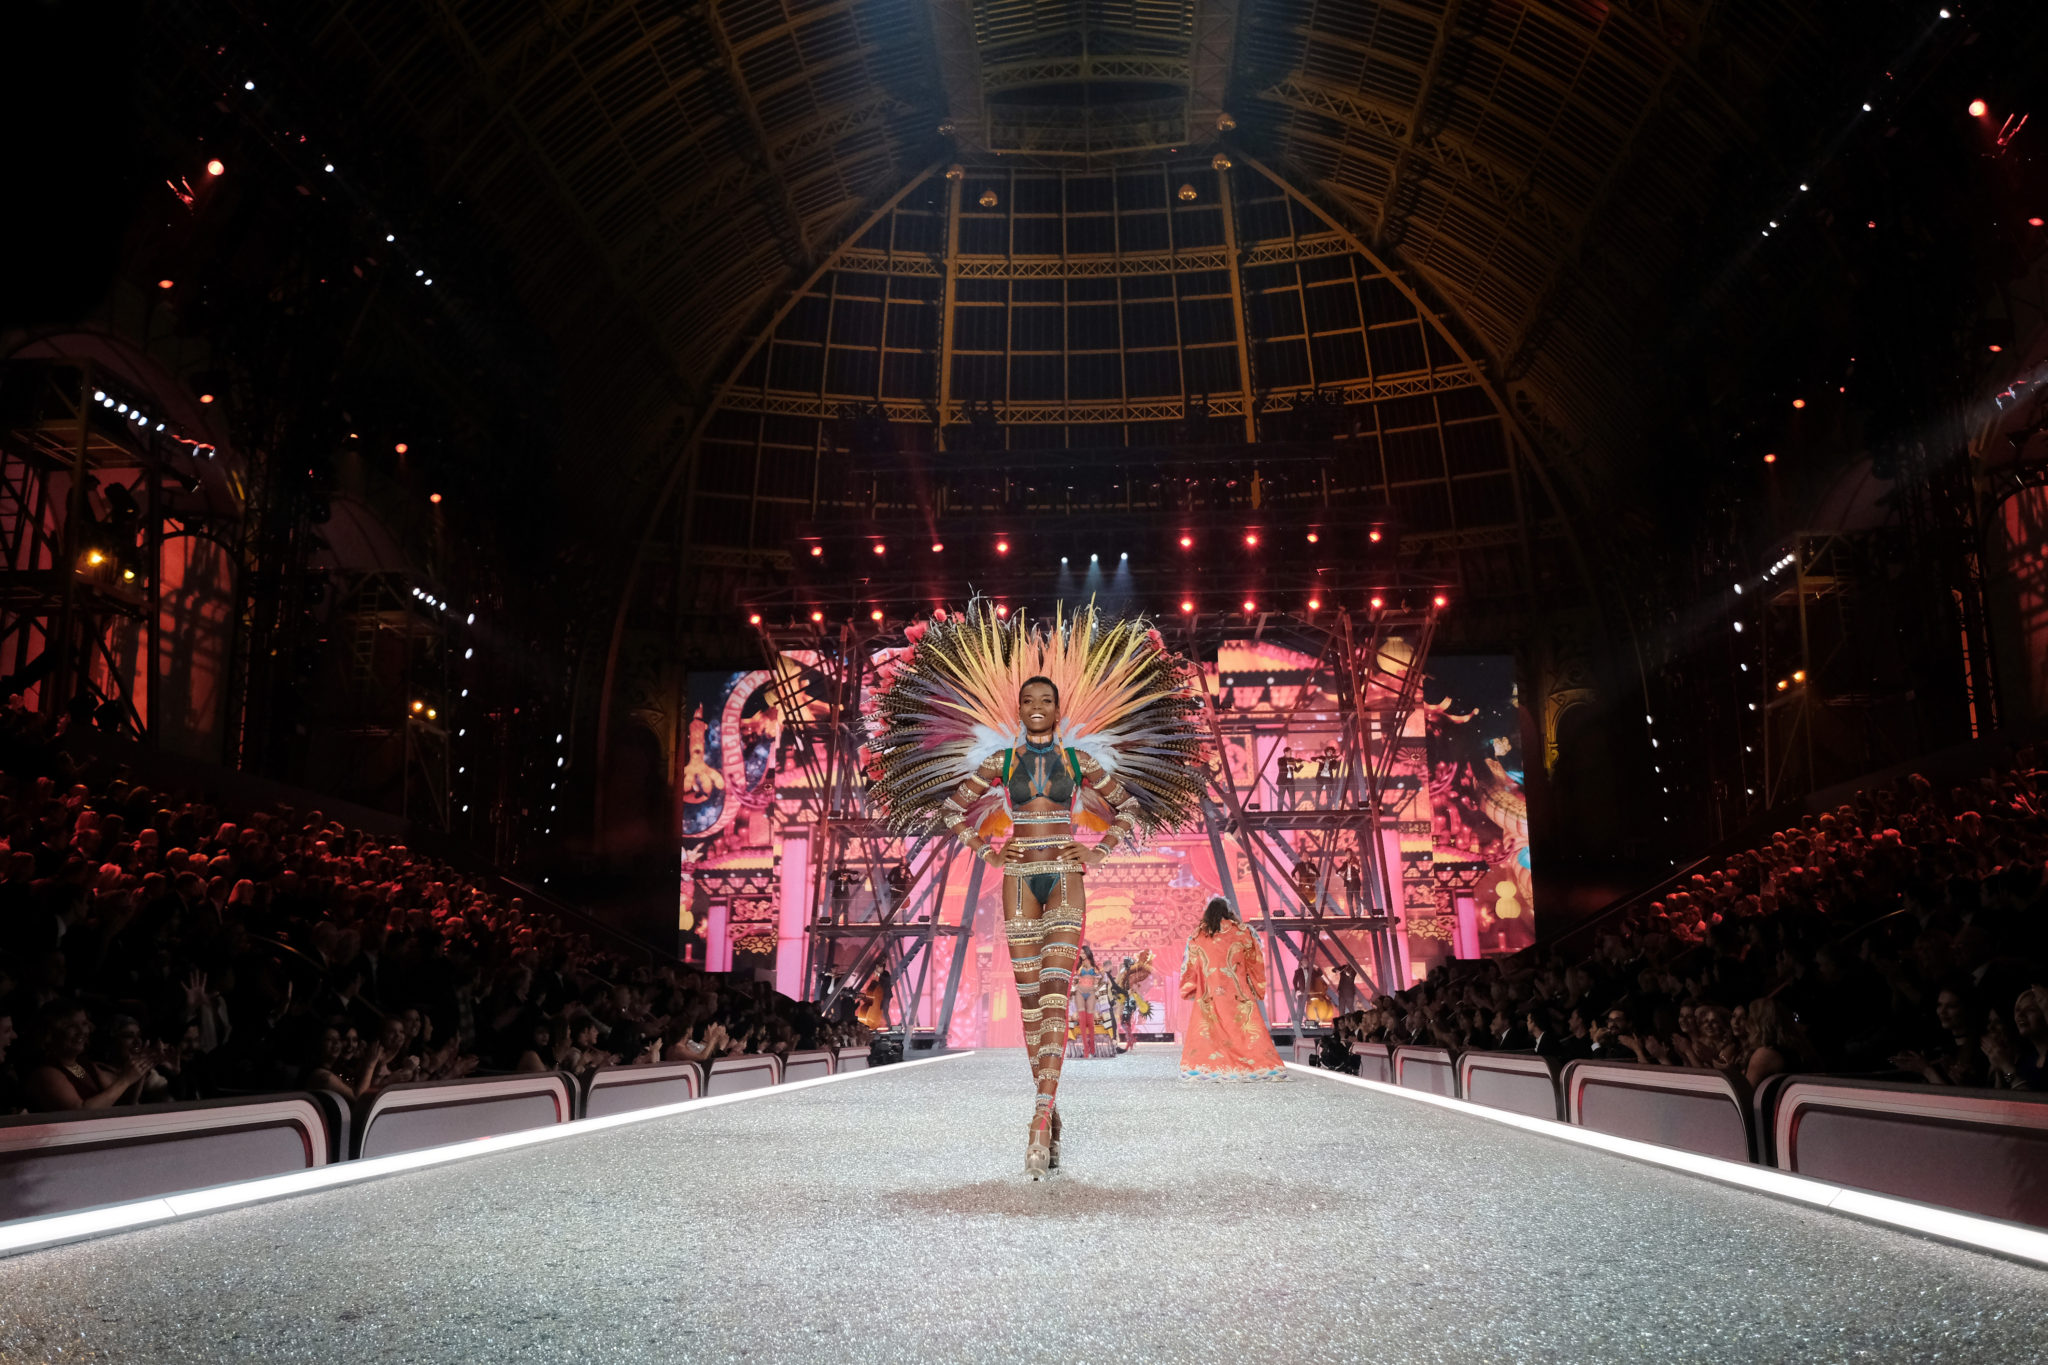 PARIS, FRANCE - NOVEMBER 30: Maria Borges walks the runway during the 2016 Victoria's Secret Fashion Show on November 30, 2016 in Paris, France. (Photo by Dimitrios Kambouris/Getty Images for Victoria's Secret)